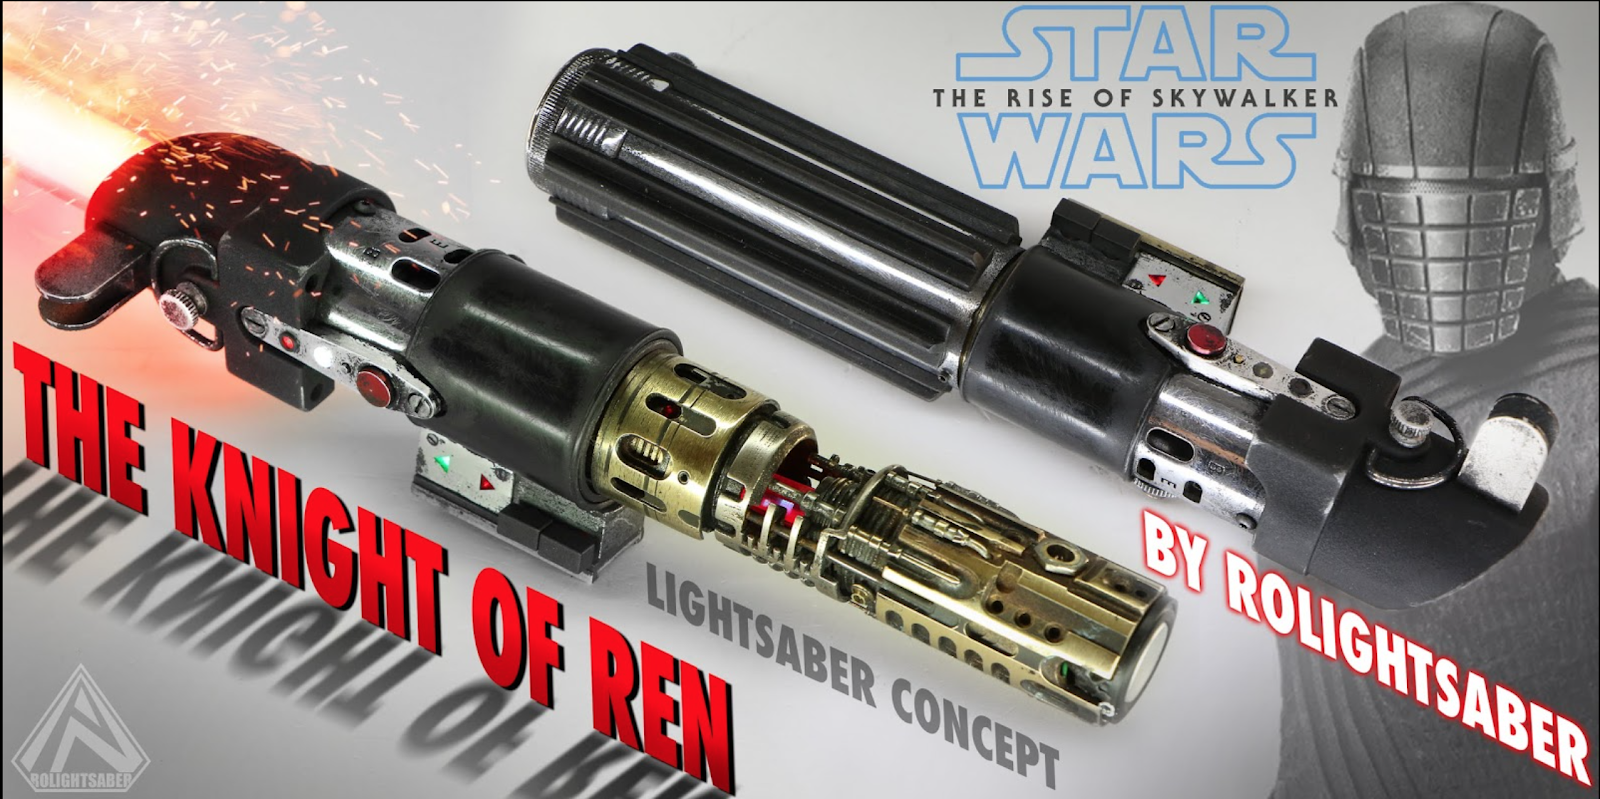 The Knight of Ren Lightsaber